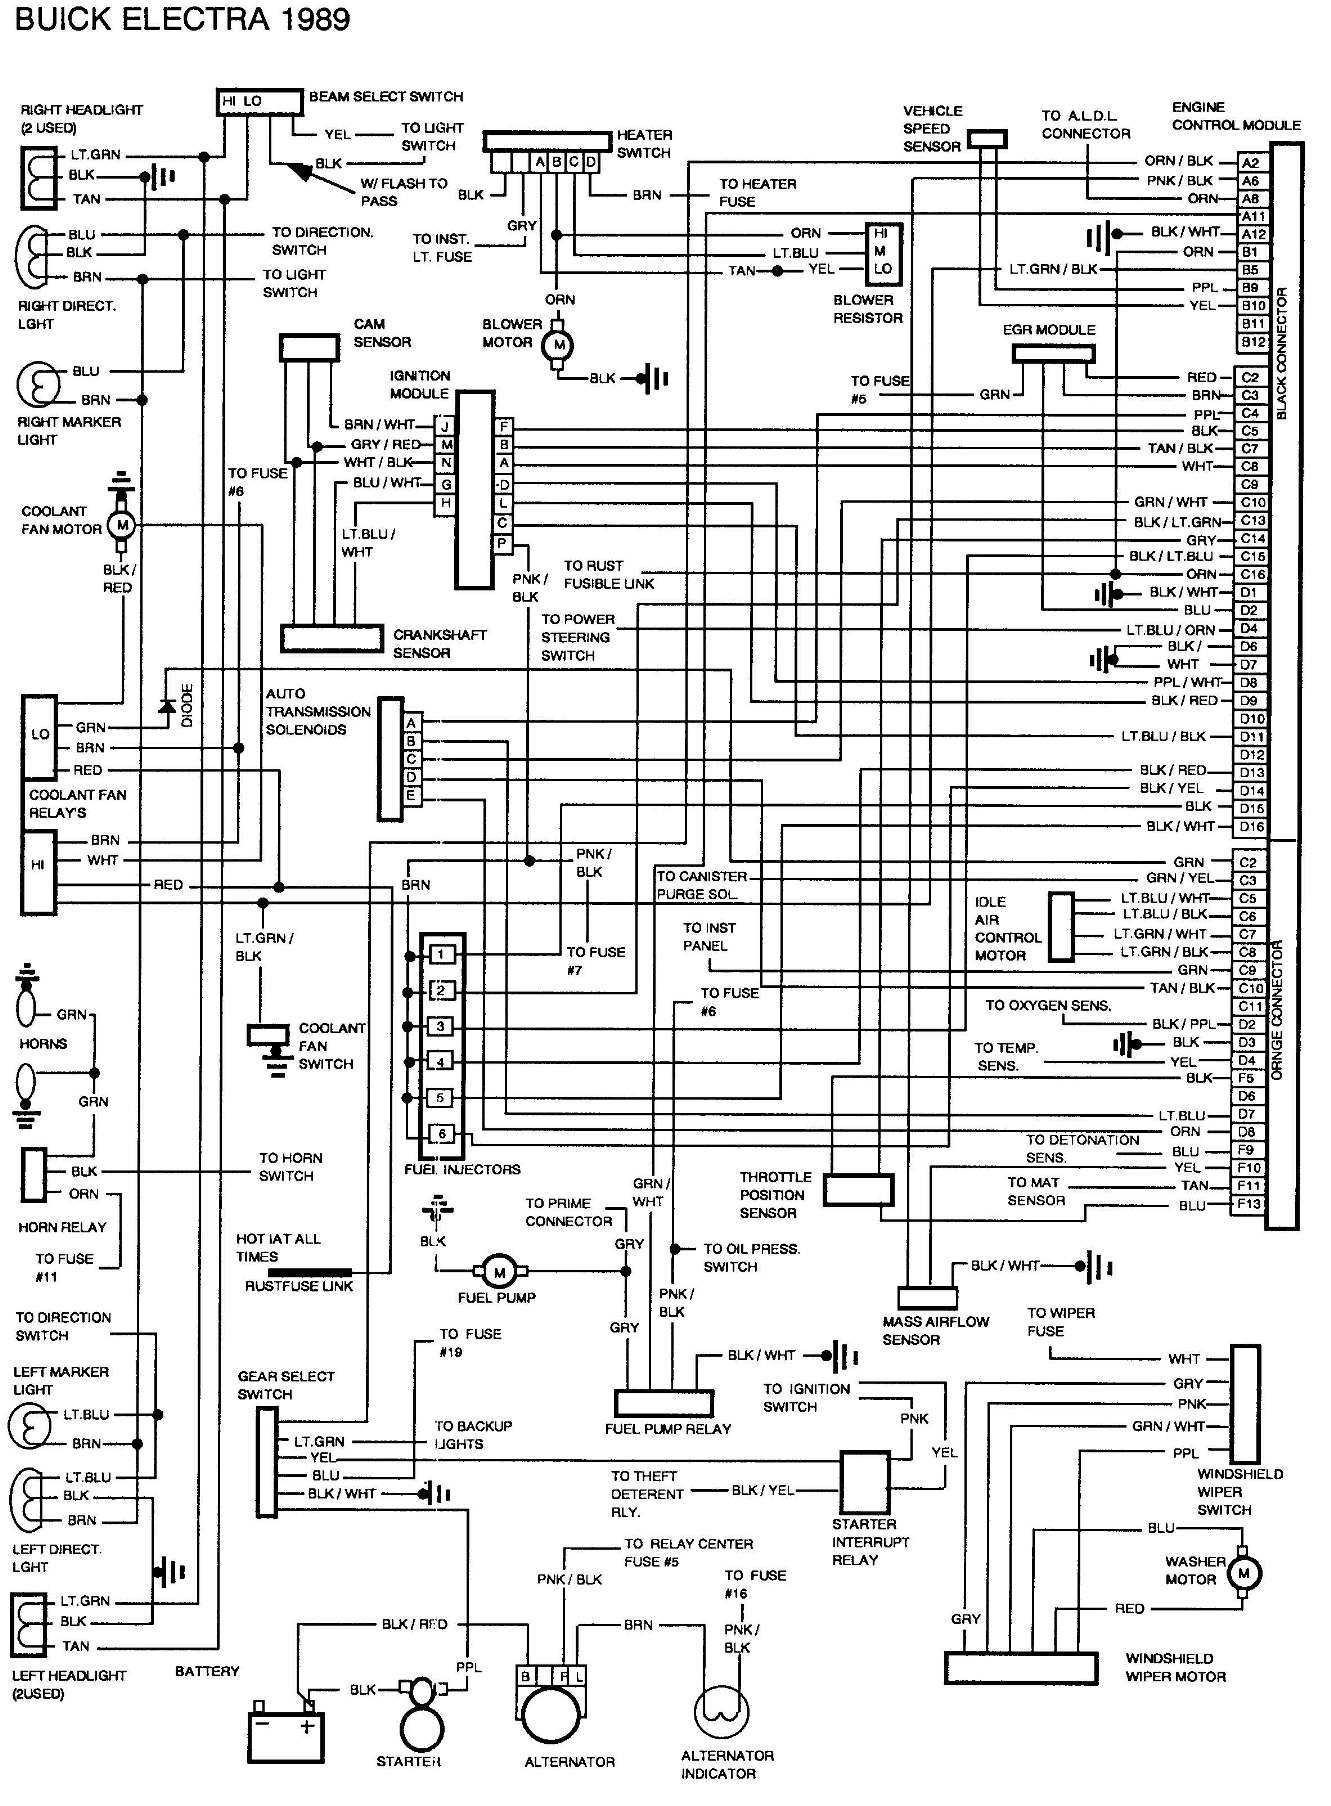 battery master switch wiring diagram  | 1331 x 1806